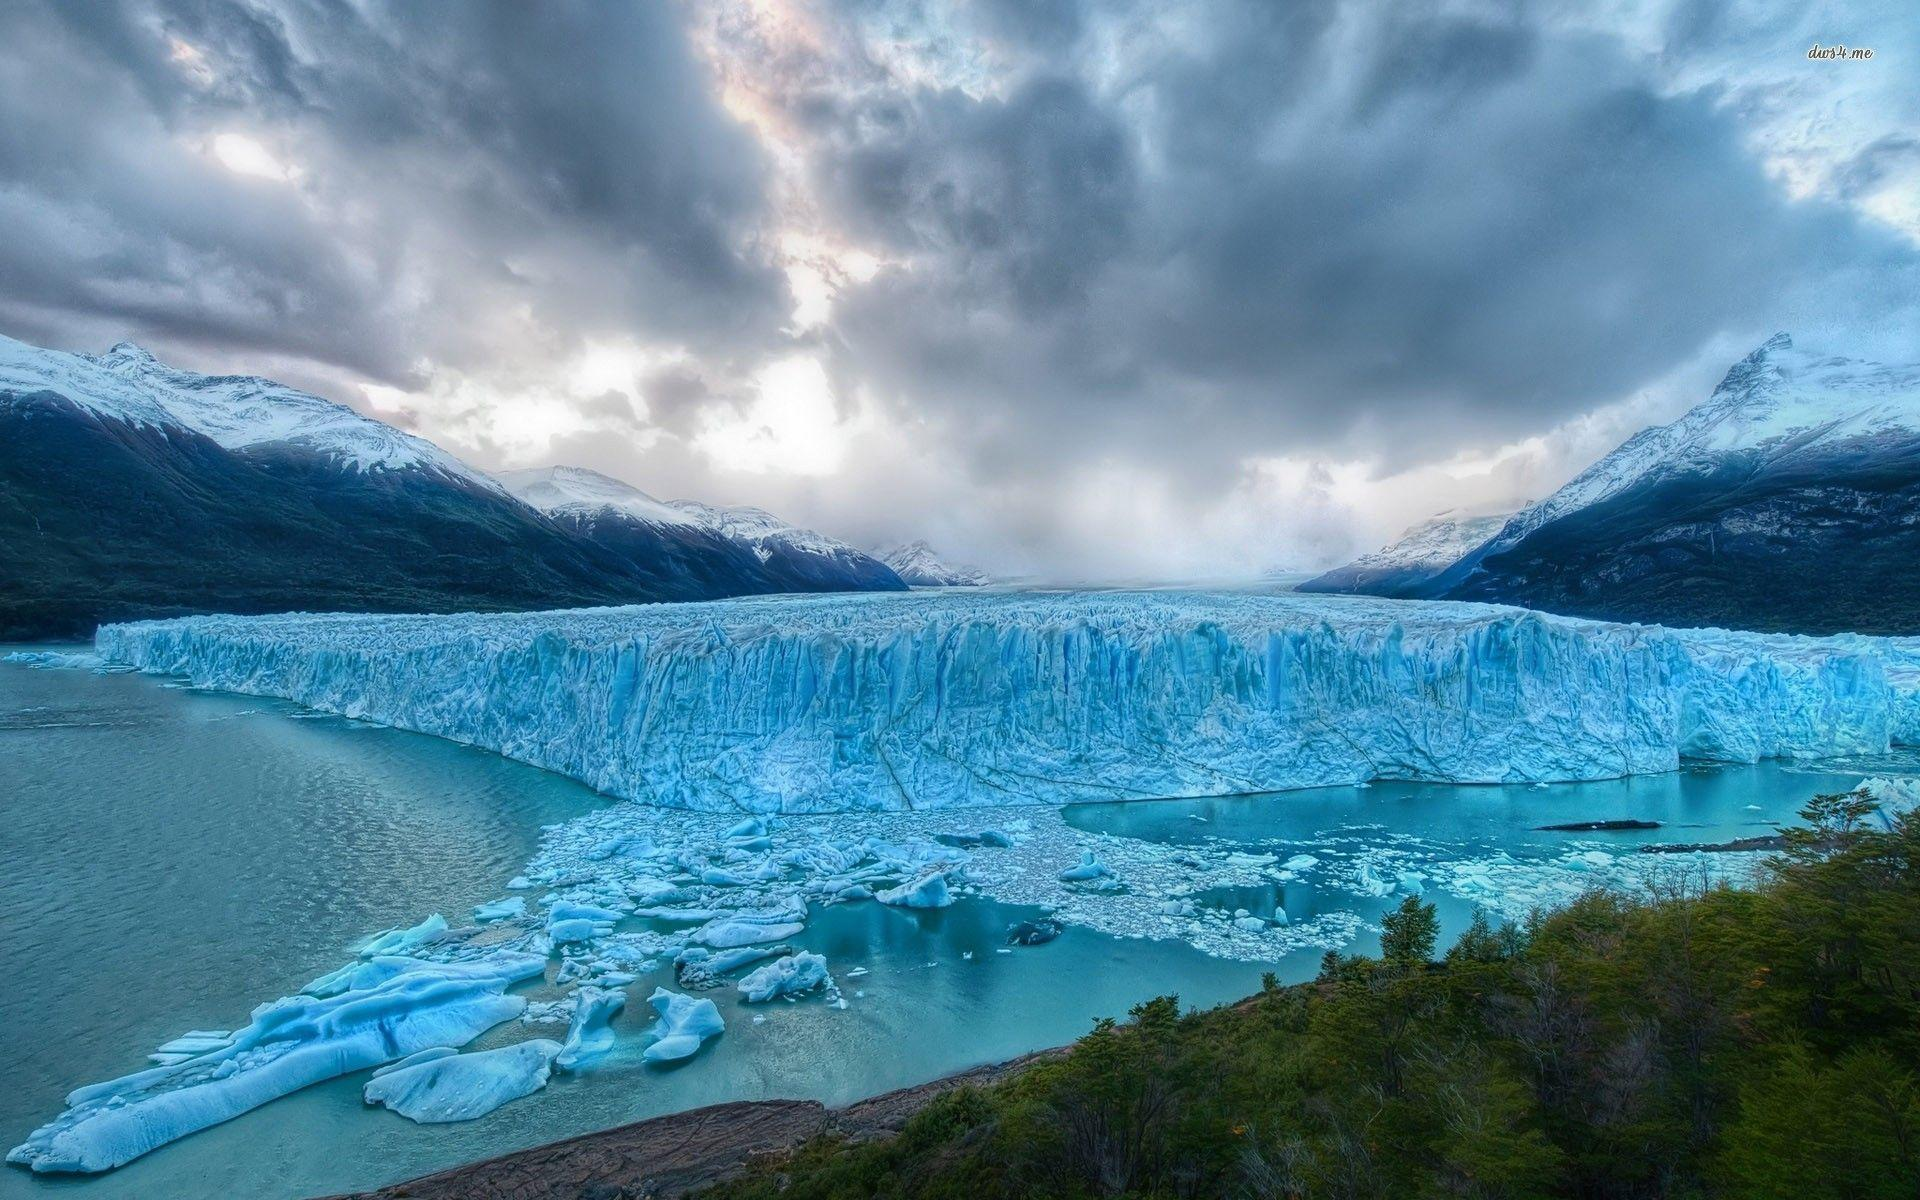 Blue Ice Glacier Wallpapers Free 11965 HD Pictures